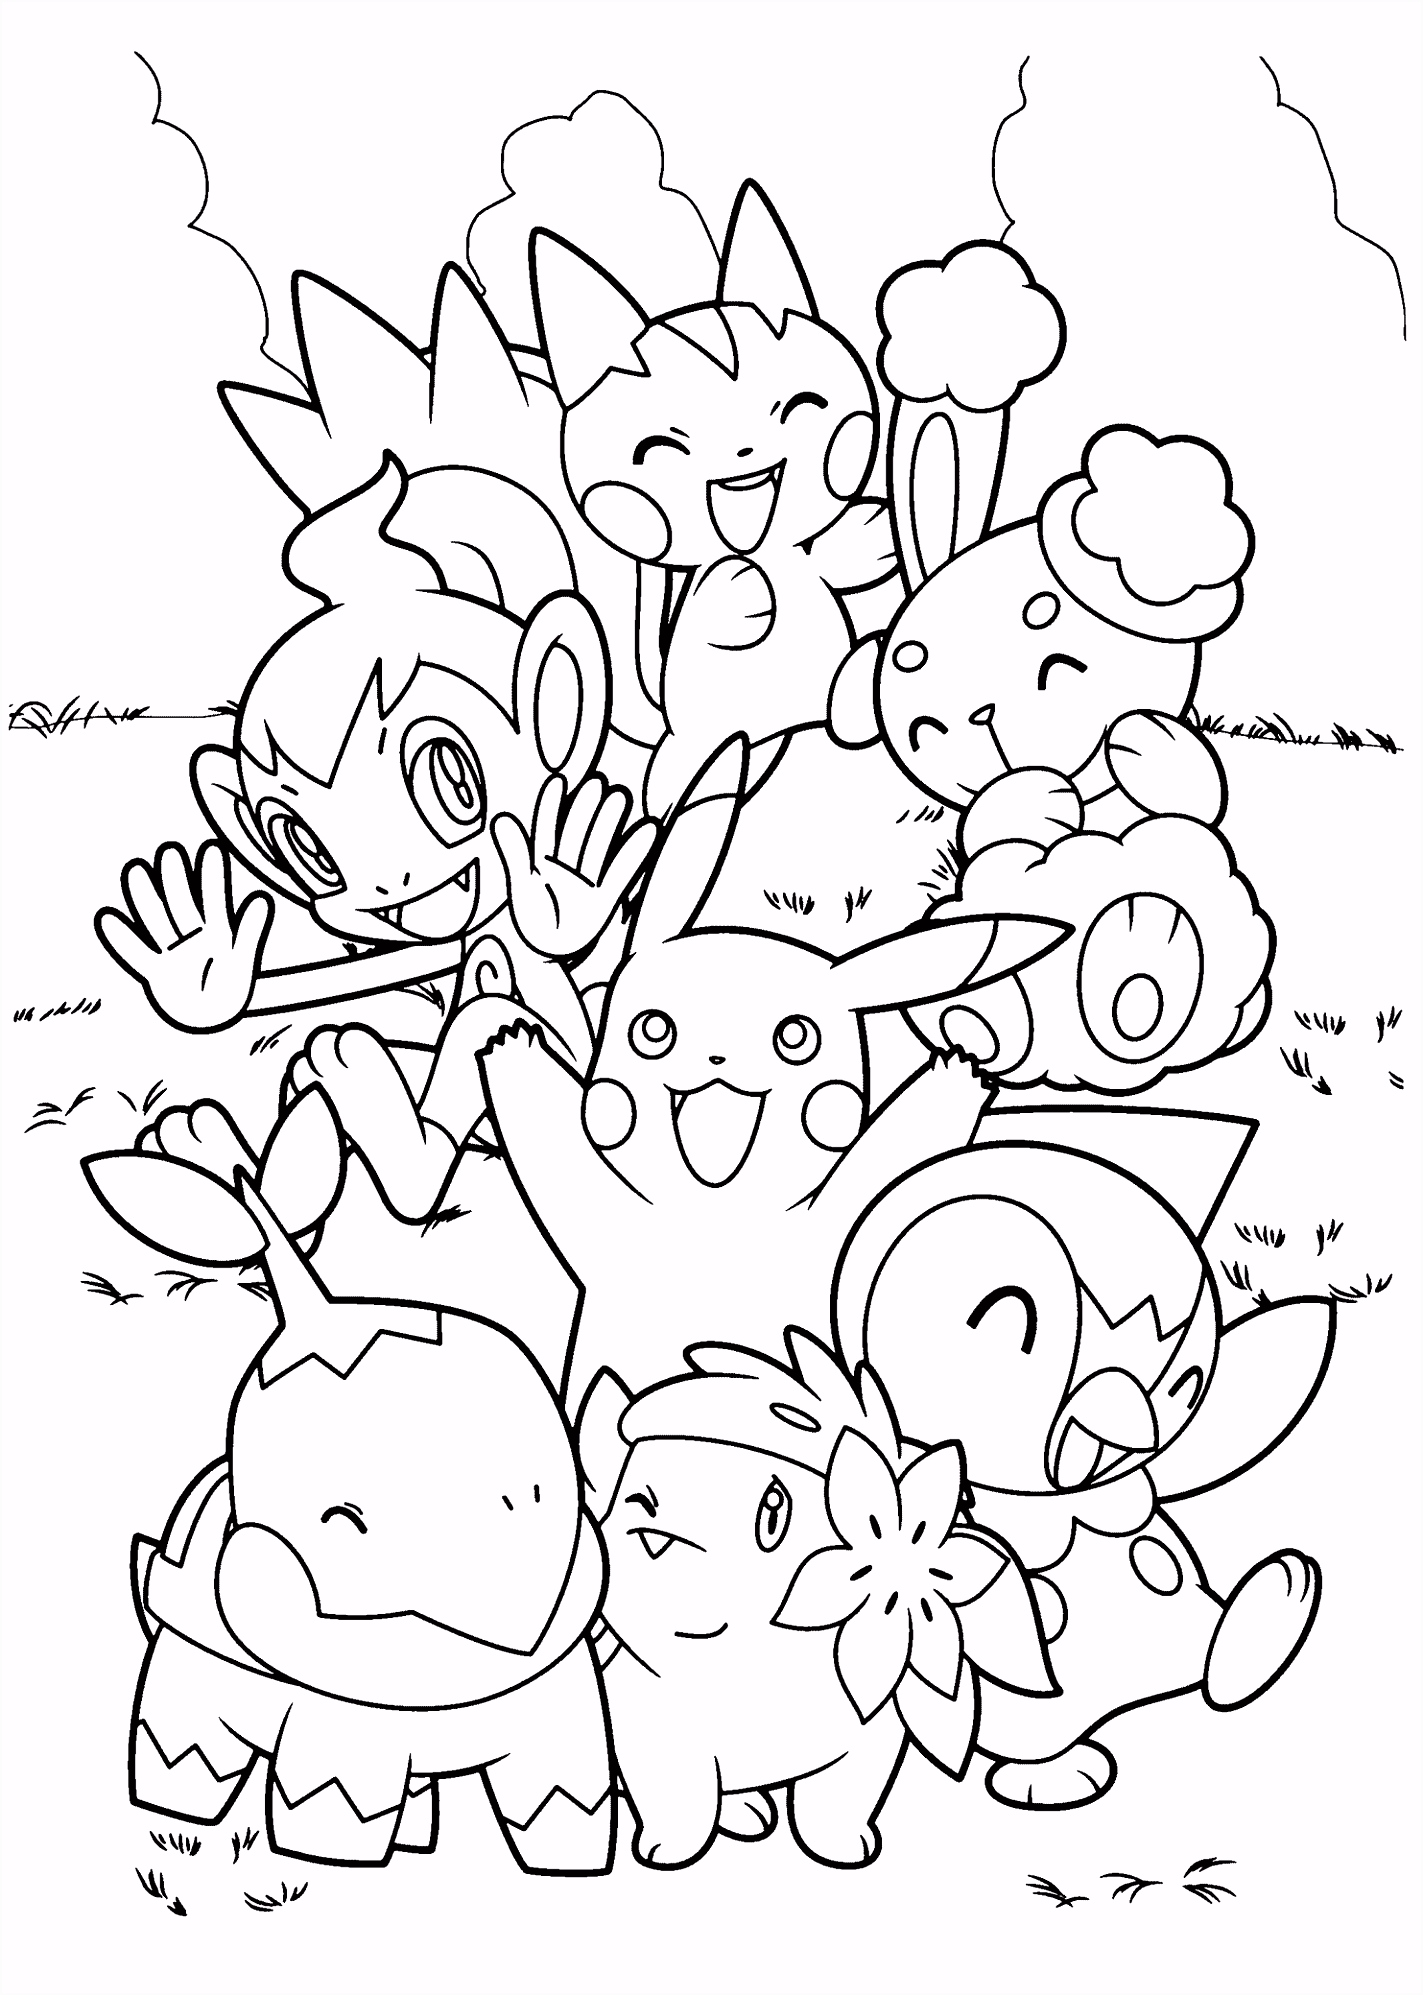 Top 75 Free Printable Pokemon Coloring Pages line